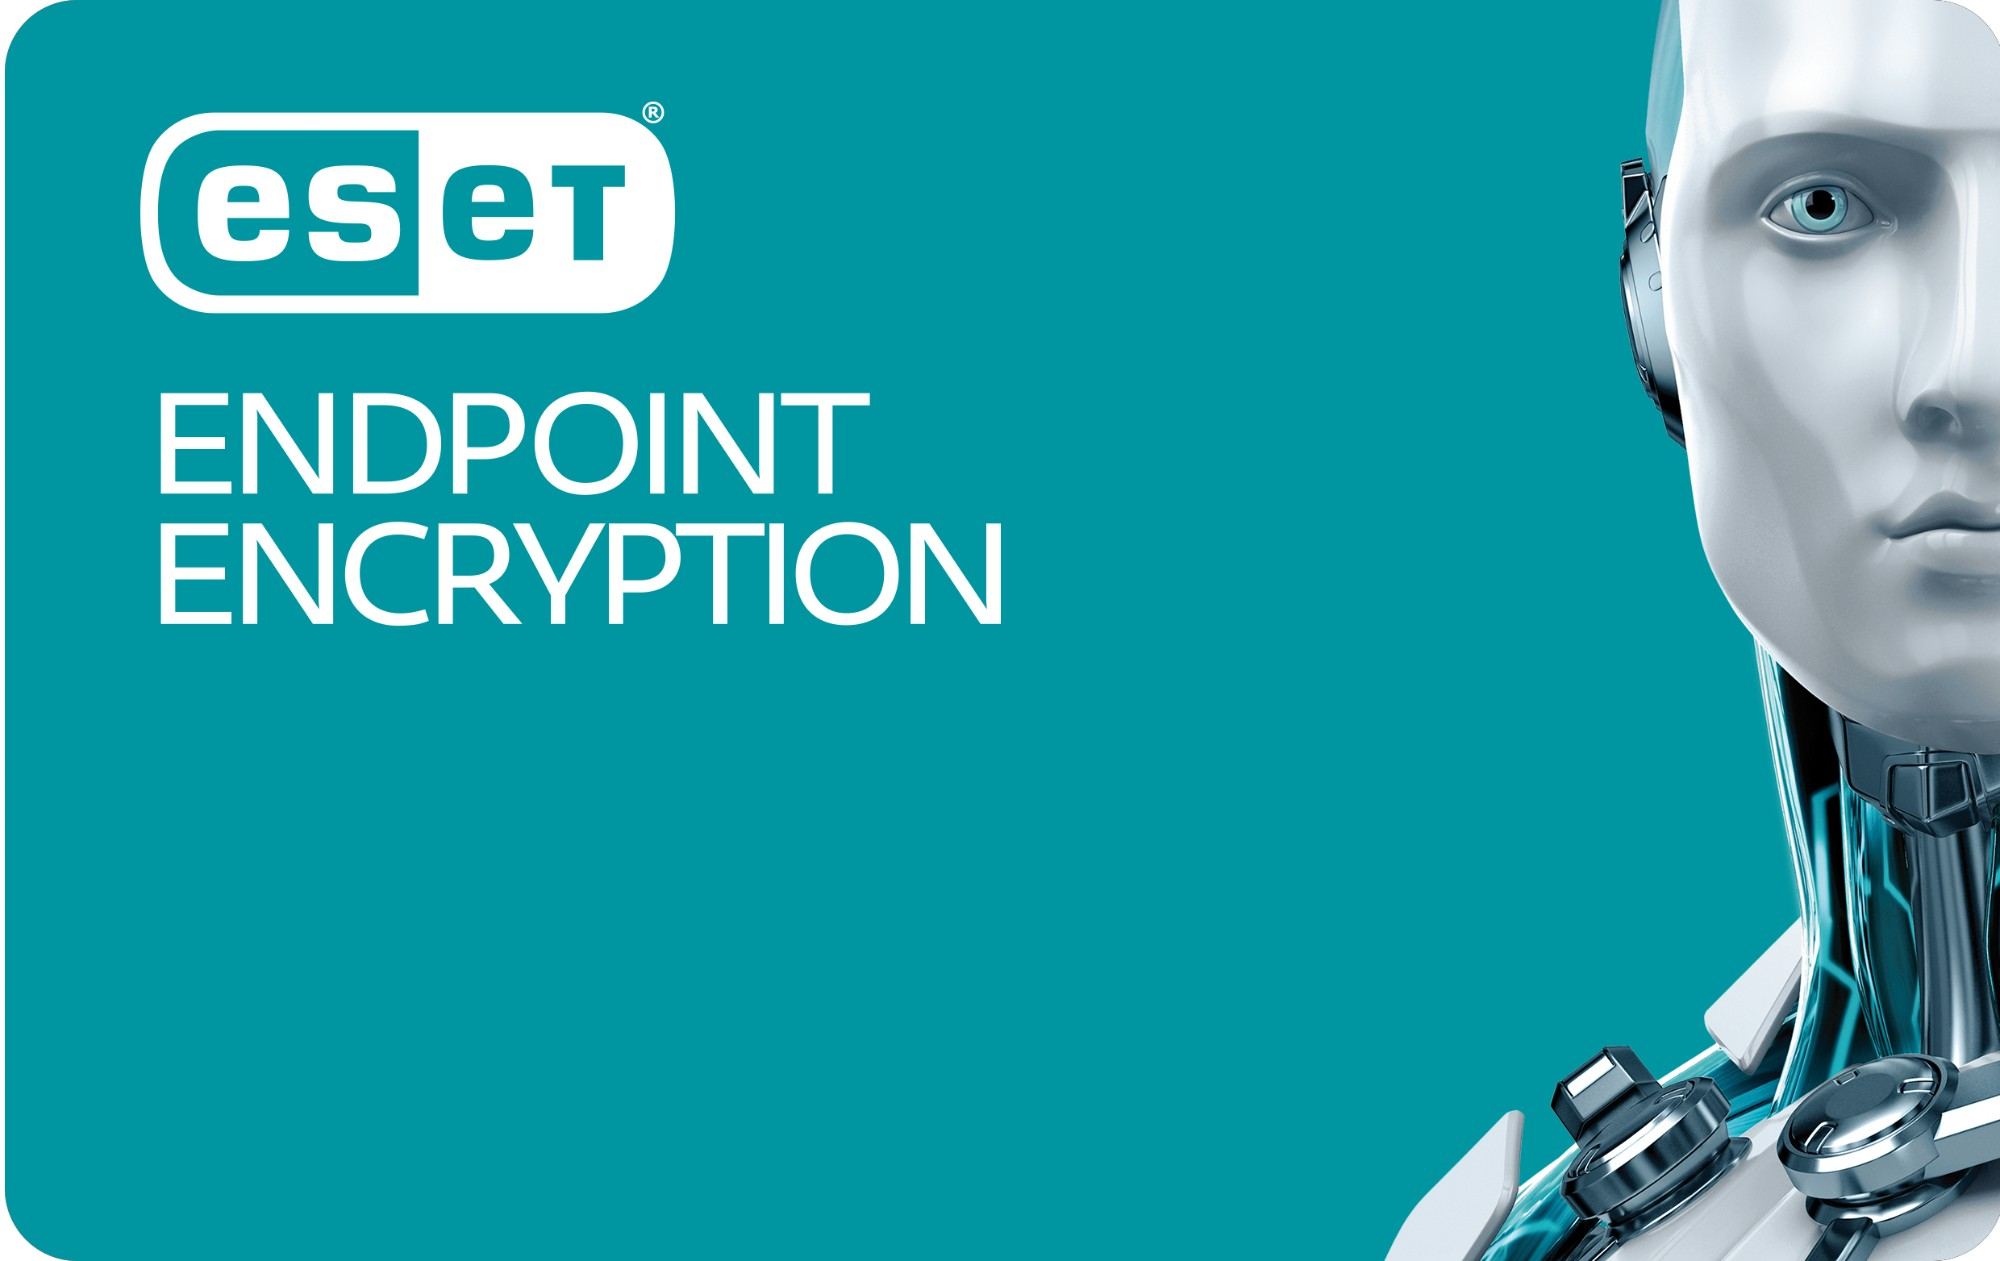 ESET Endpoint Encryption Pro 250 - 499 User Government (GOV) license 250 - 499 license(s) 1 year(s)